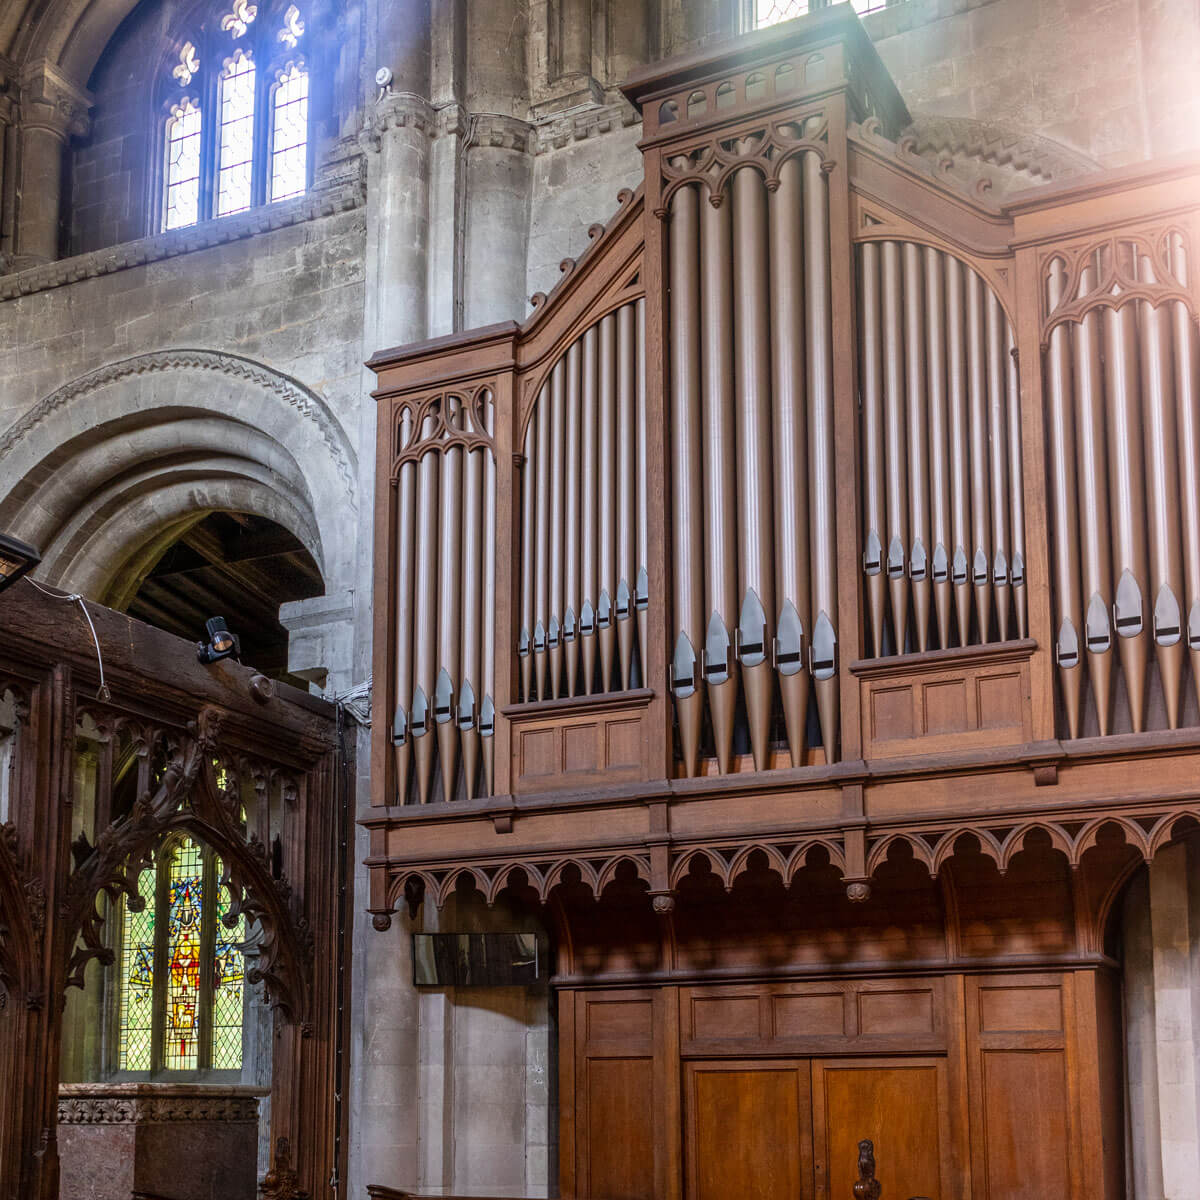 St Peter's Priory Organ